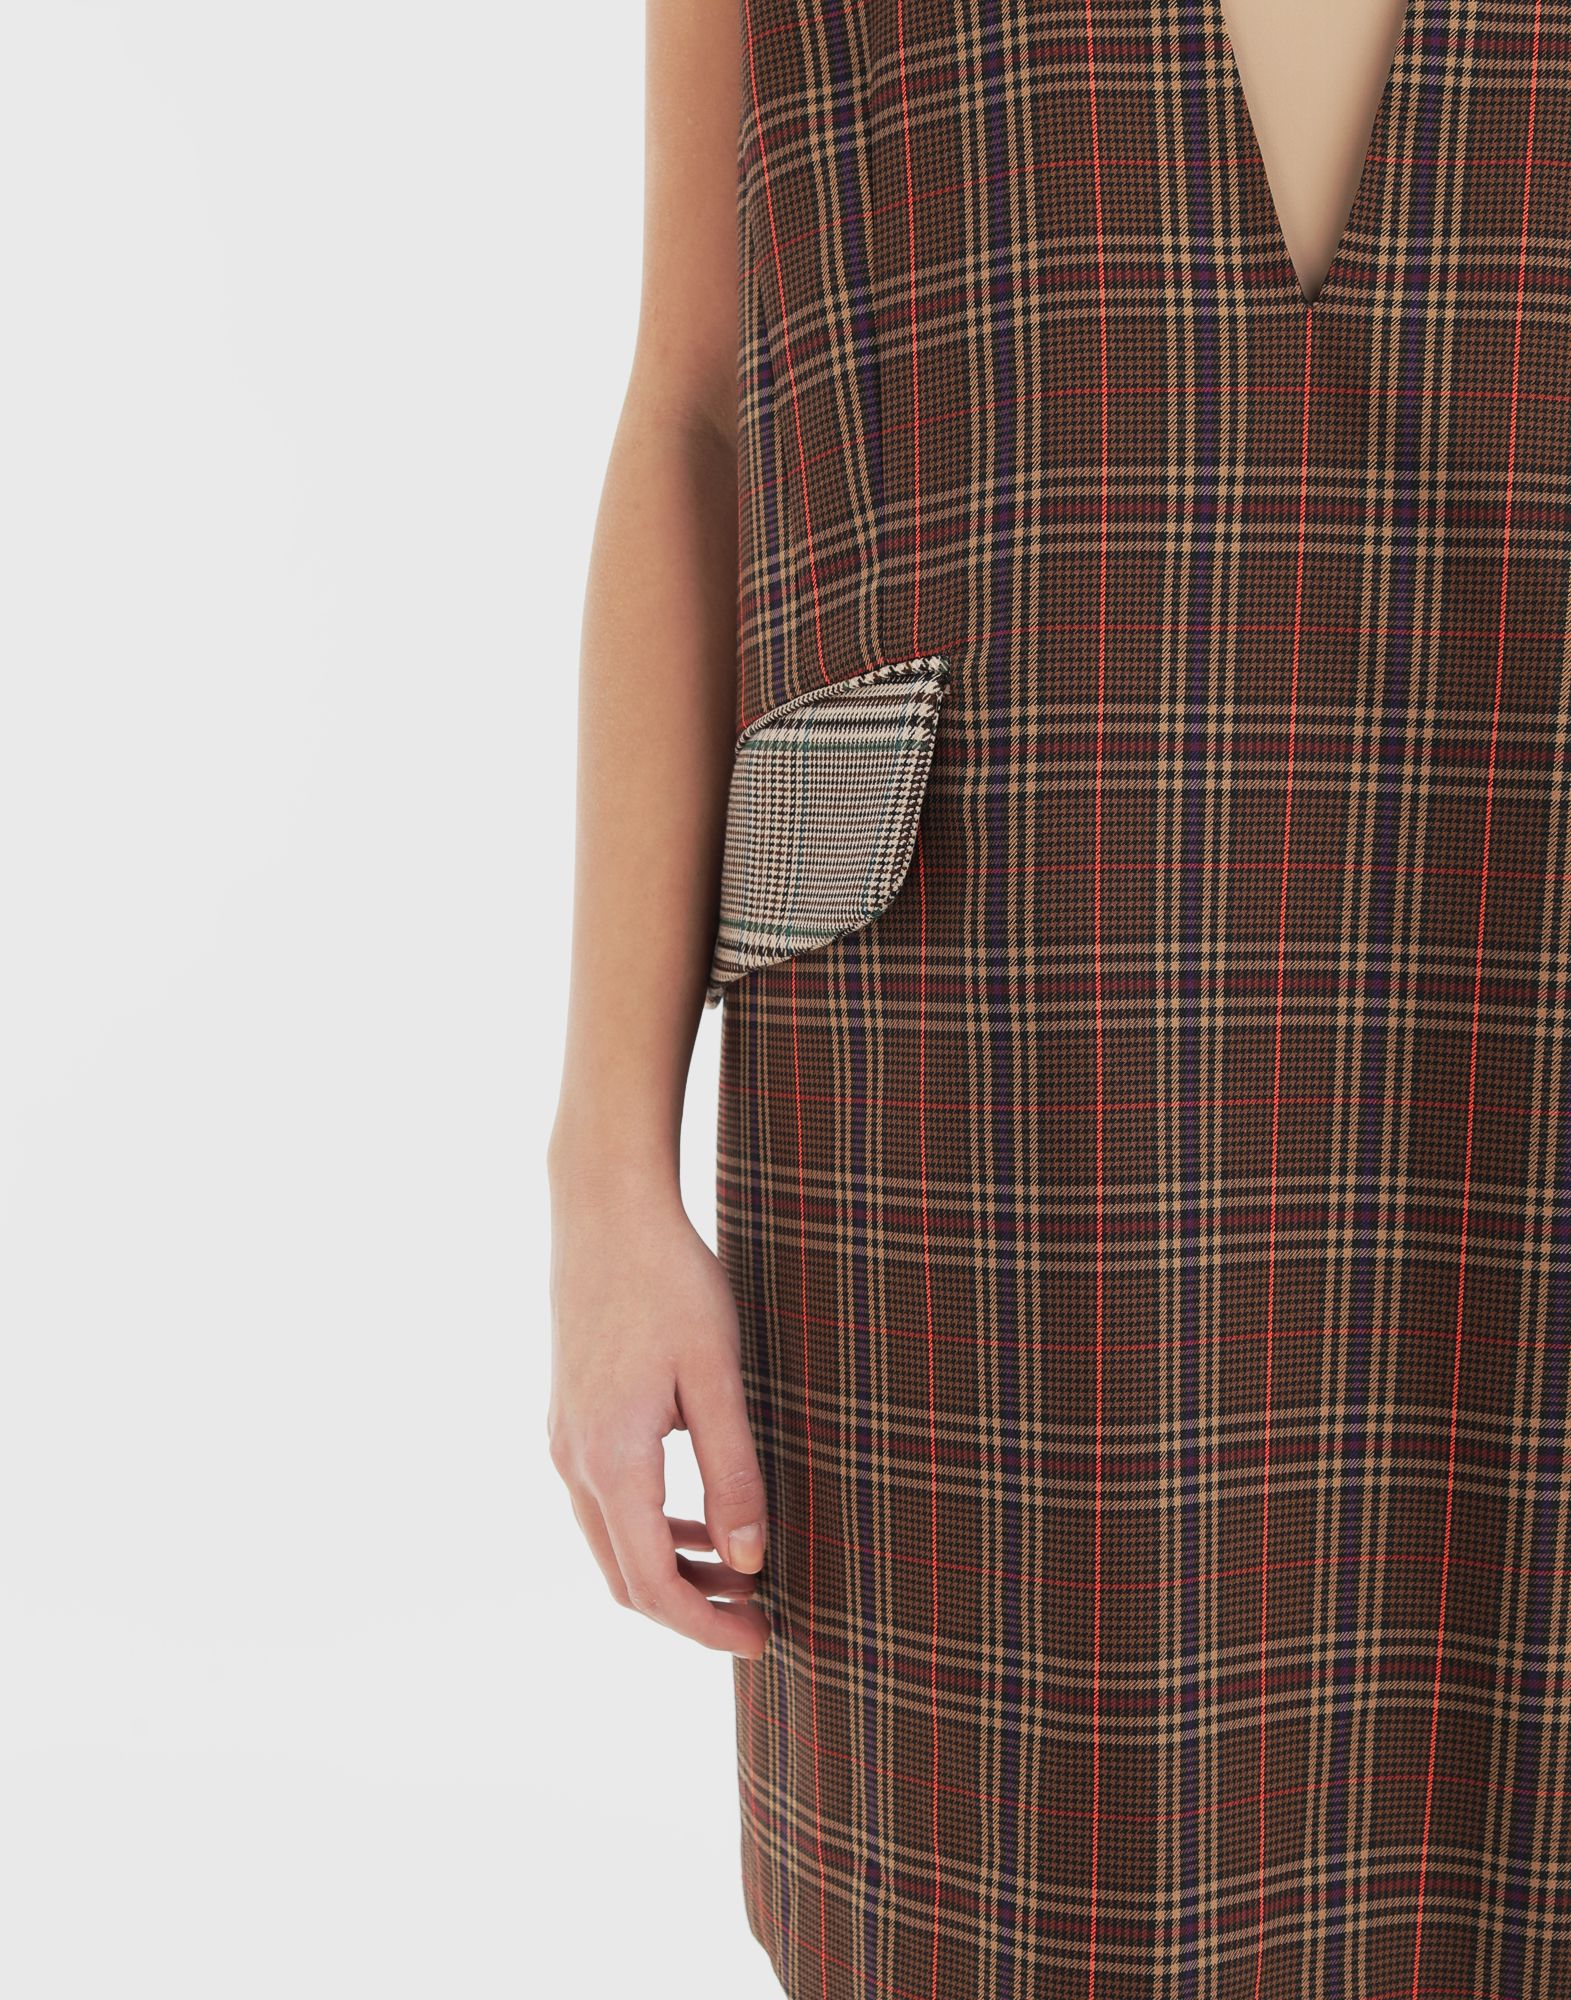 MM6 MAISON MARGIELA Checked décolleté dress Dress Woman b